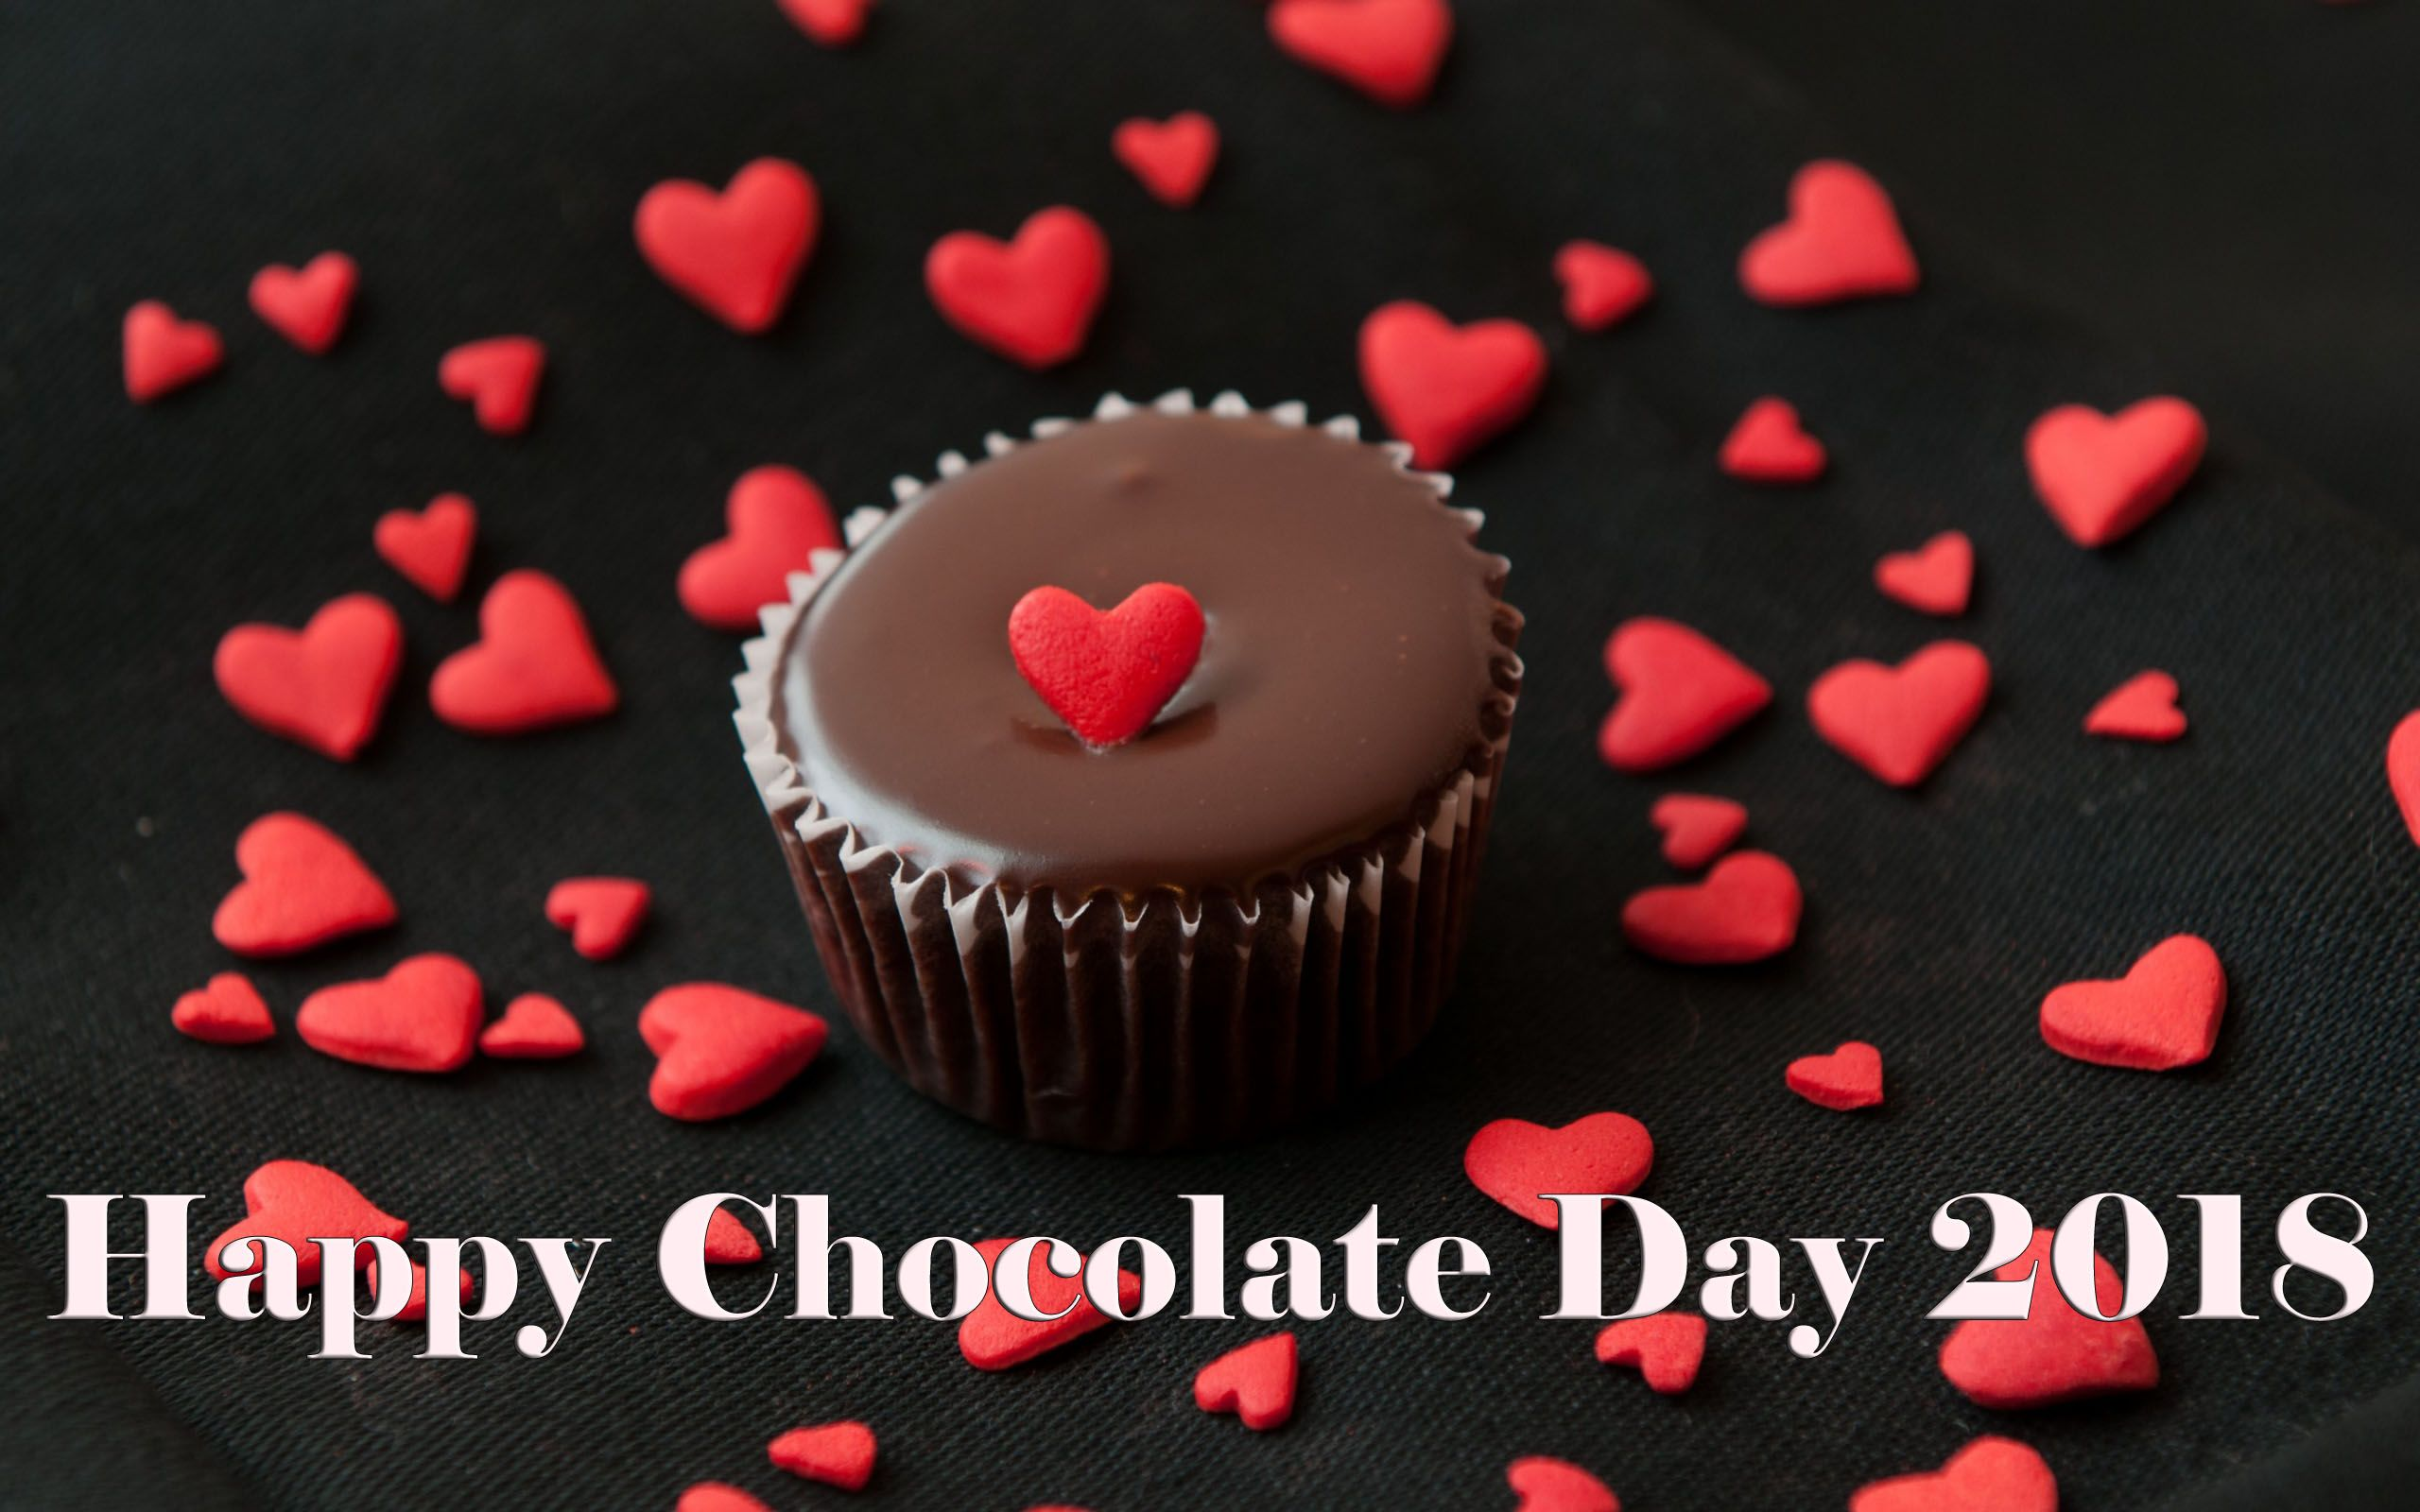 Valentine Day Wallpaper Images And Picture All Hd Wallpapers Happy Chocolate Day Chocolate Day Images Chocolate Day Love name happy chocolate day images